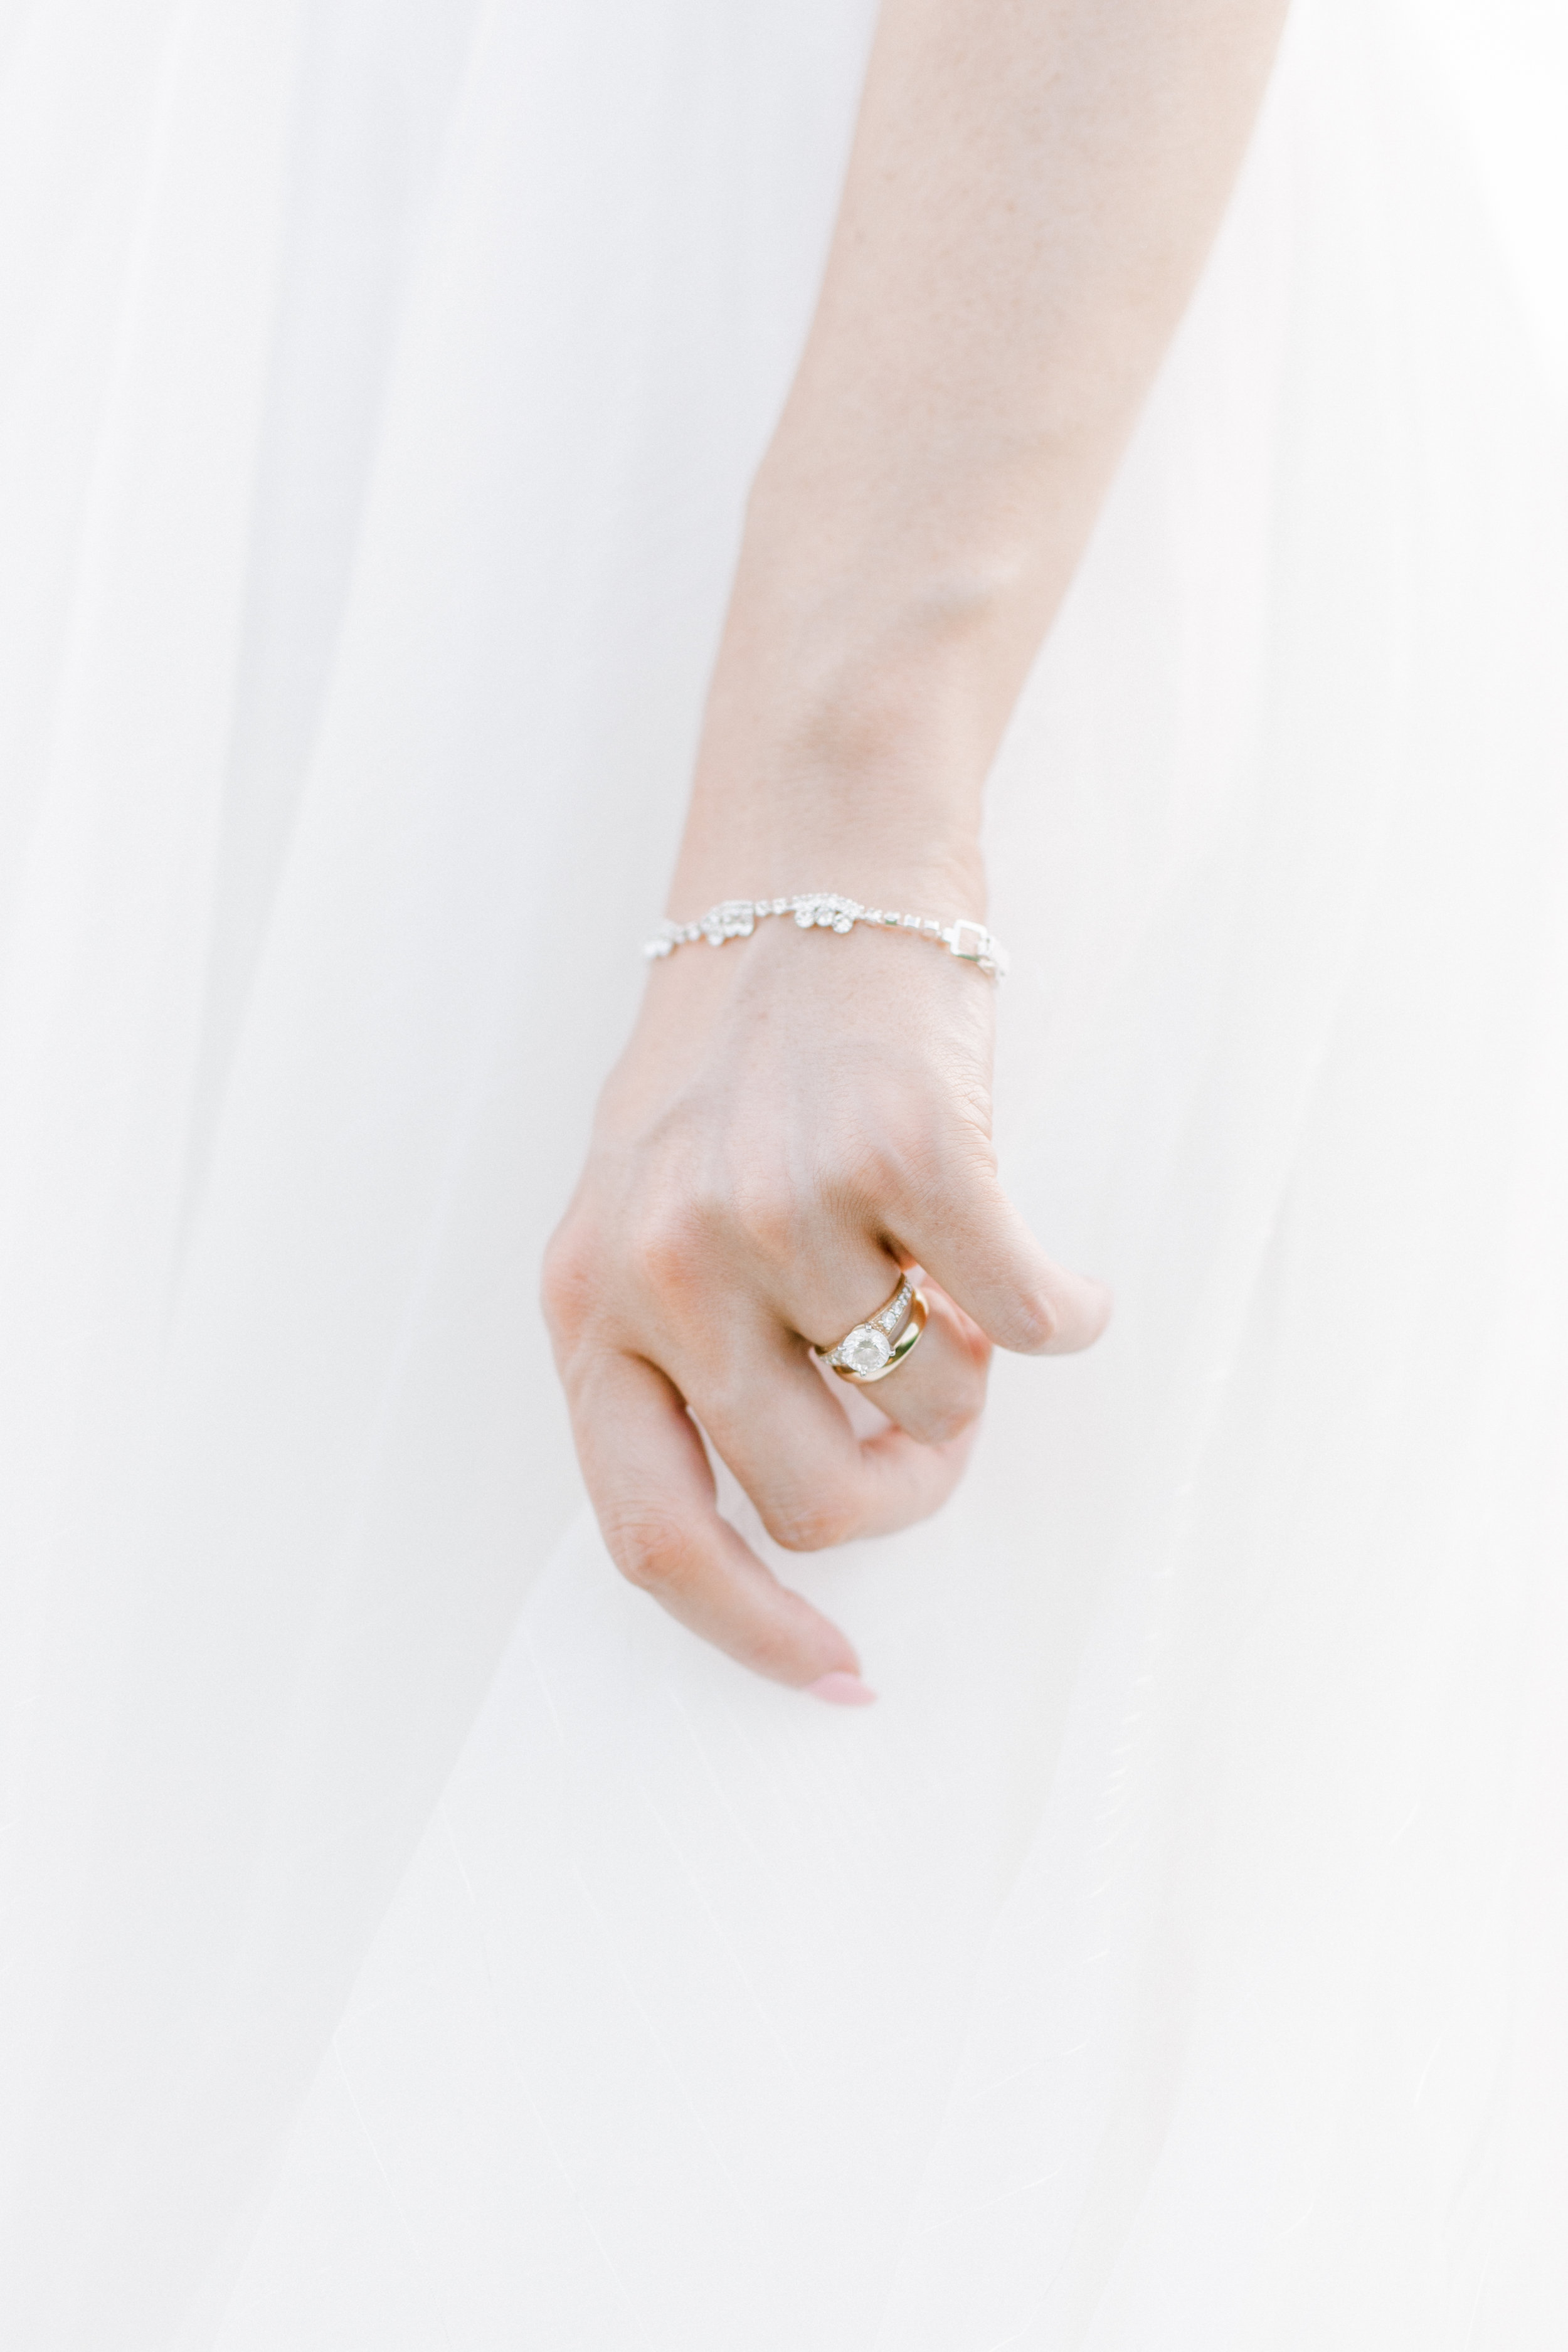 haley-richter-photography-summer-vineyard-winery-wedding-birde-ring-bands-silver-diamond-gold-band-jewelry-detail